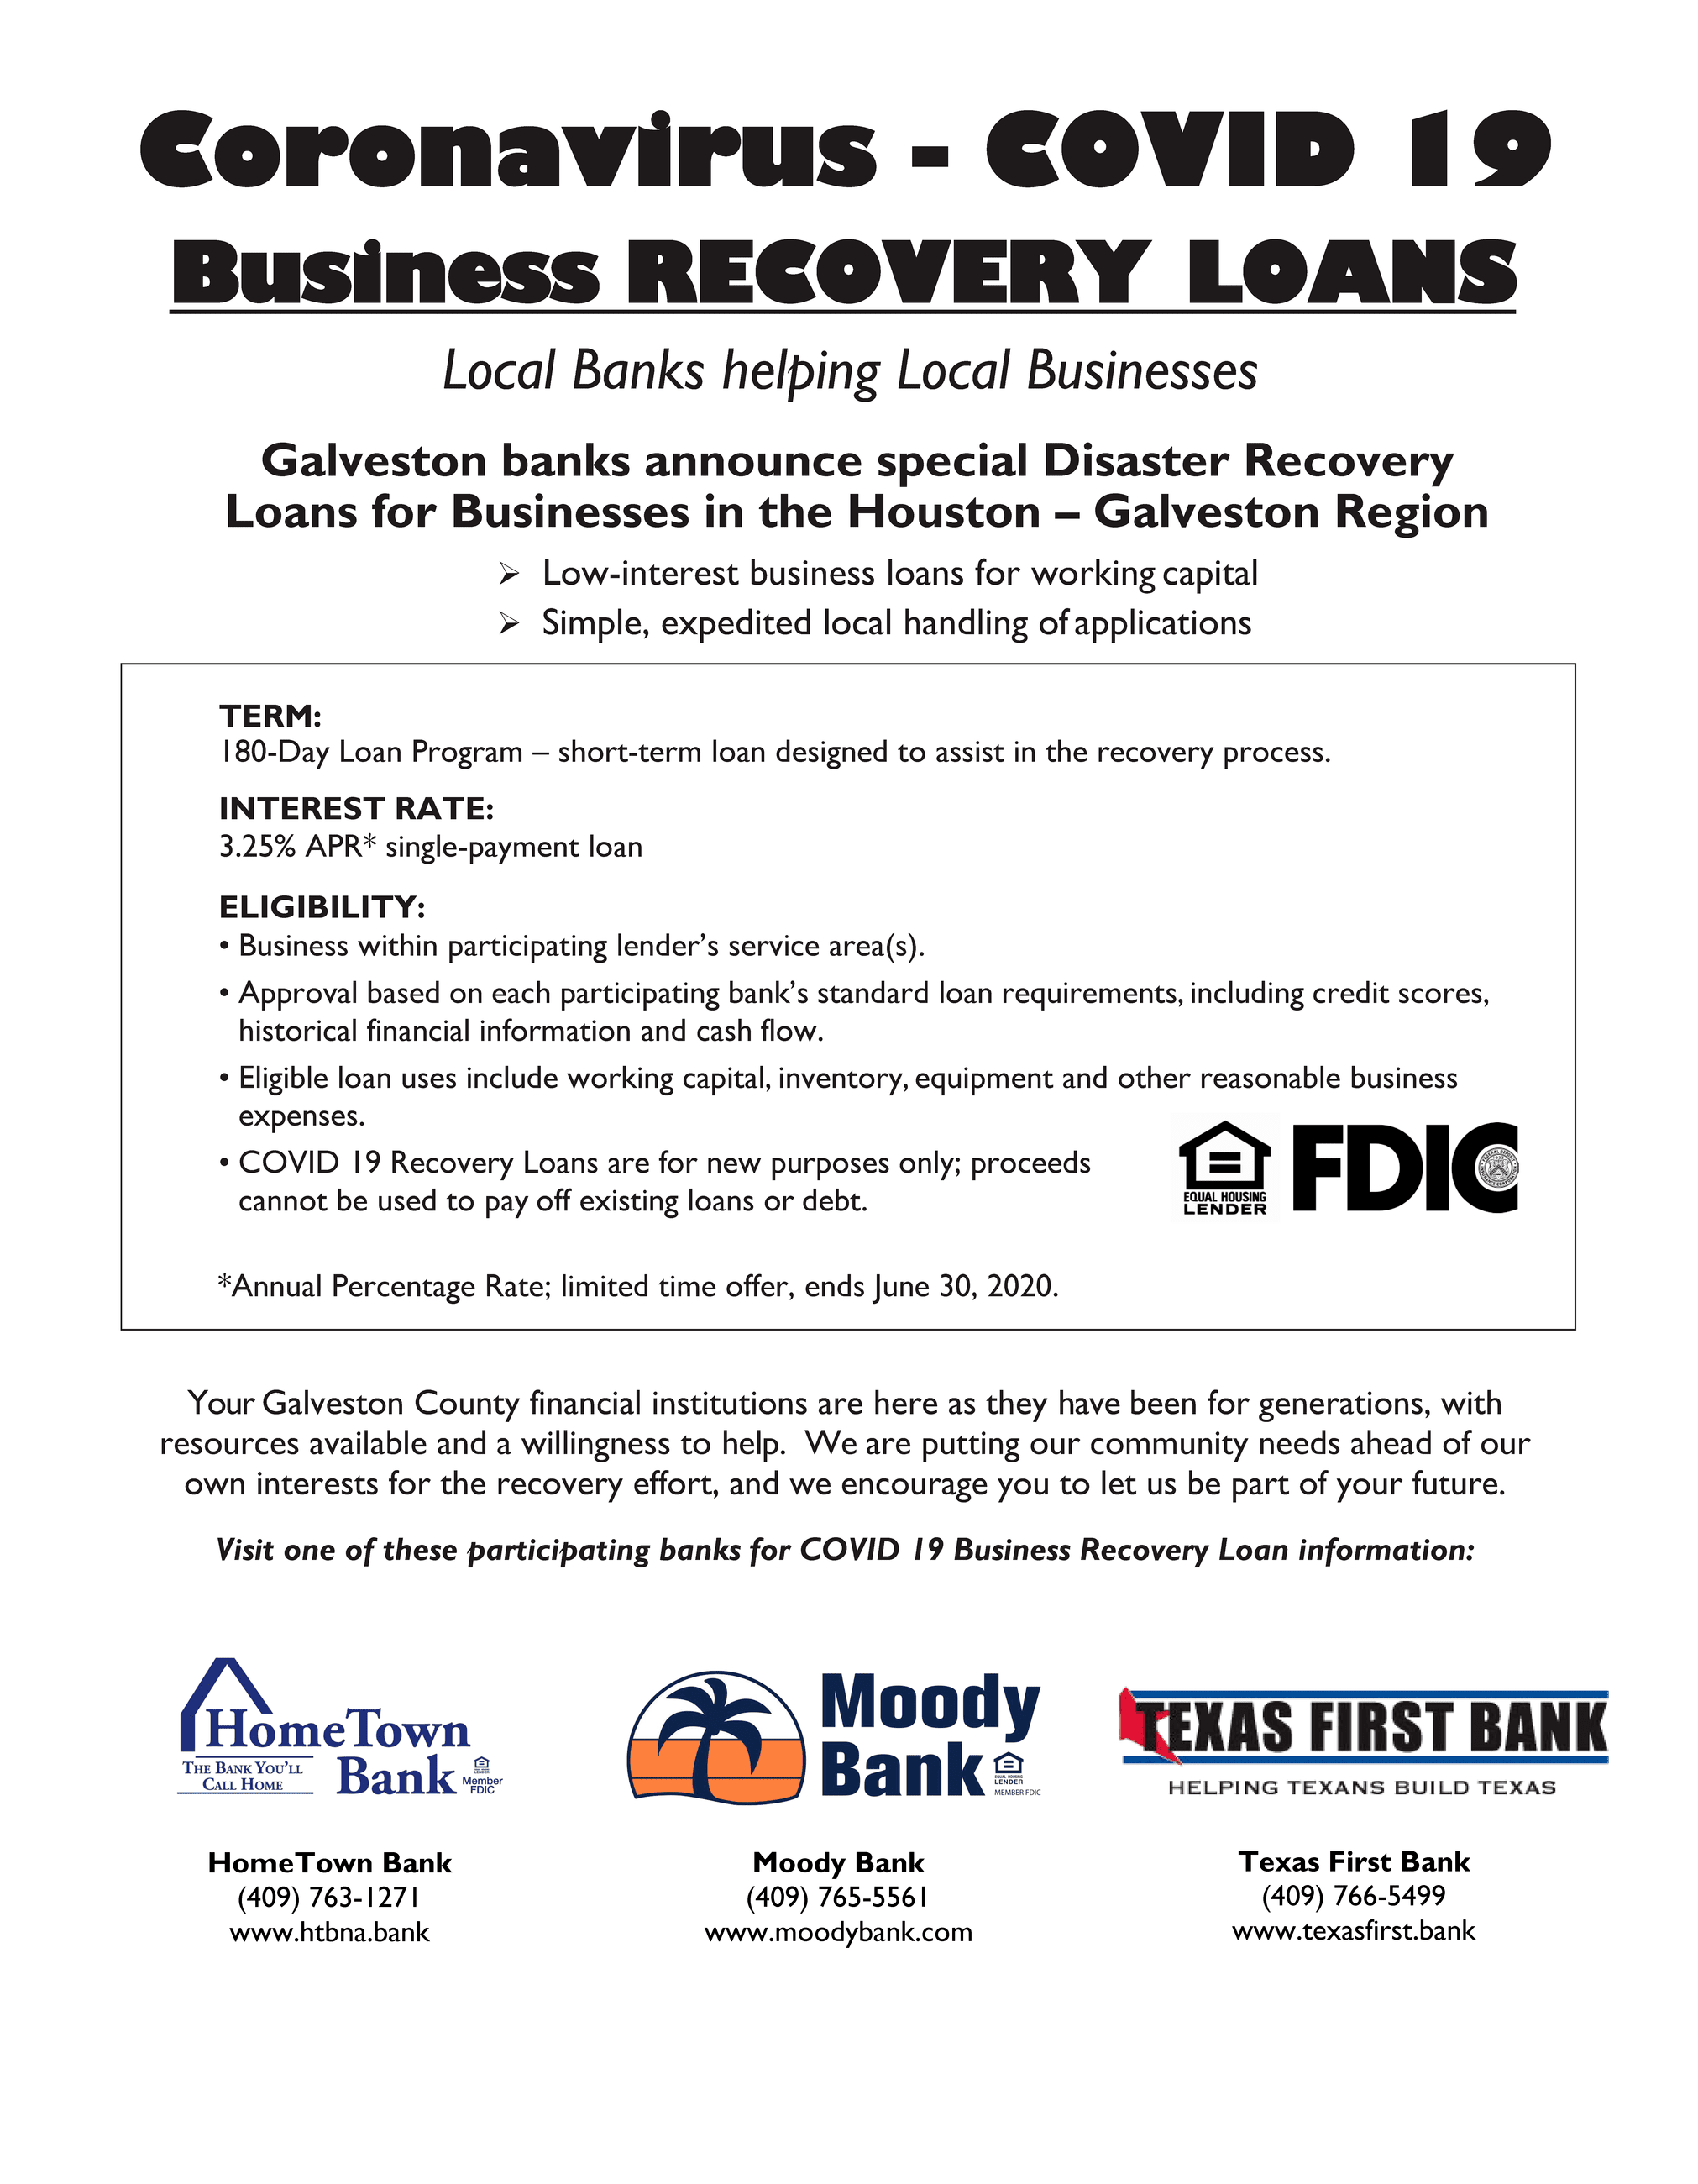 COVID-19 Business Recovery Loans flyer_3-19-20_